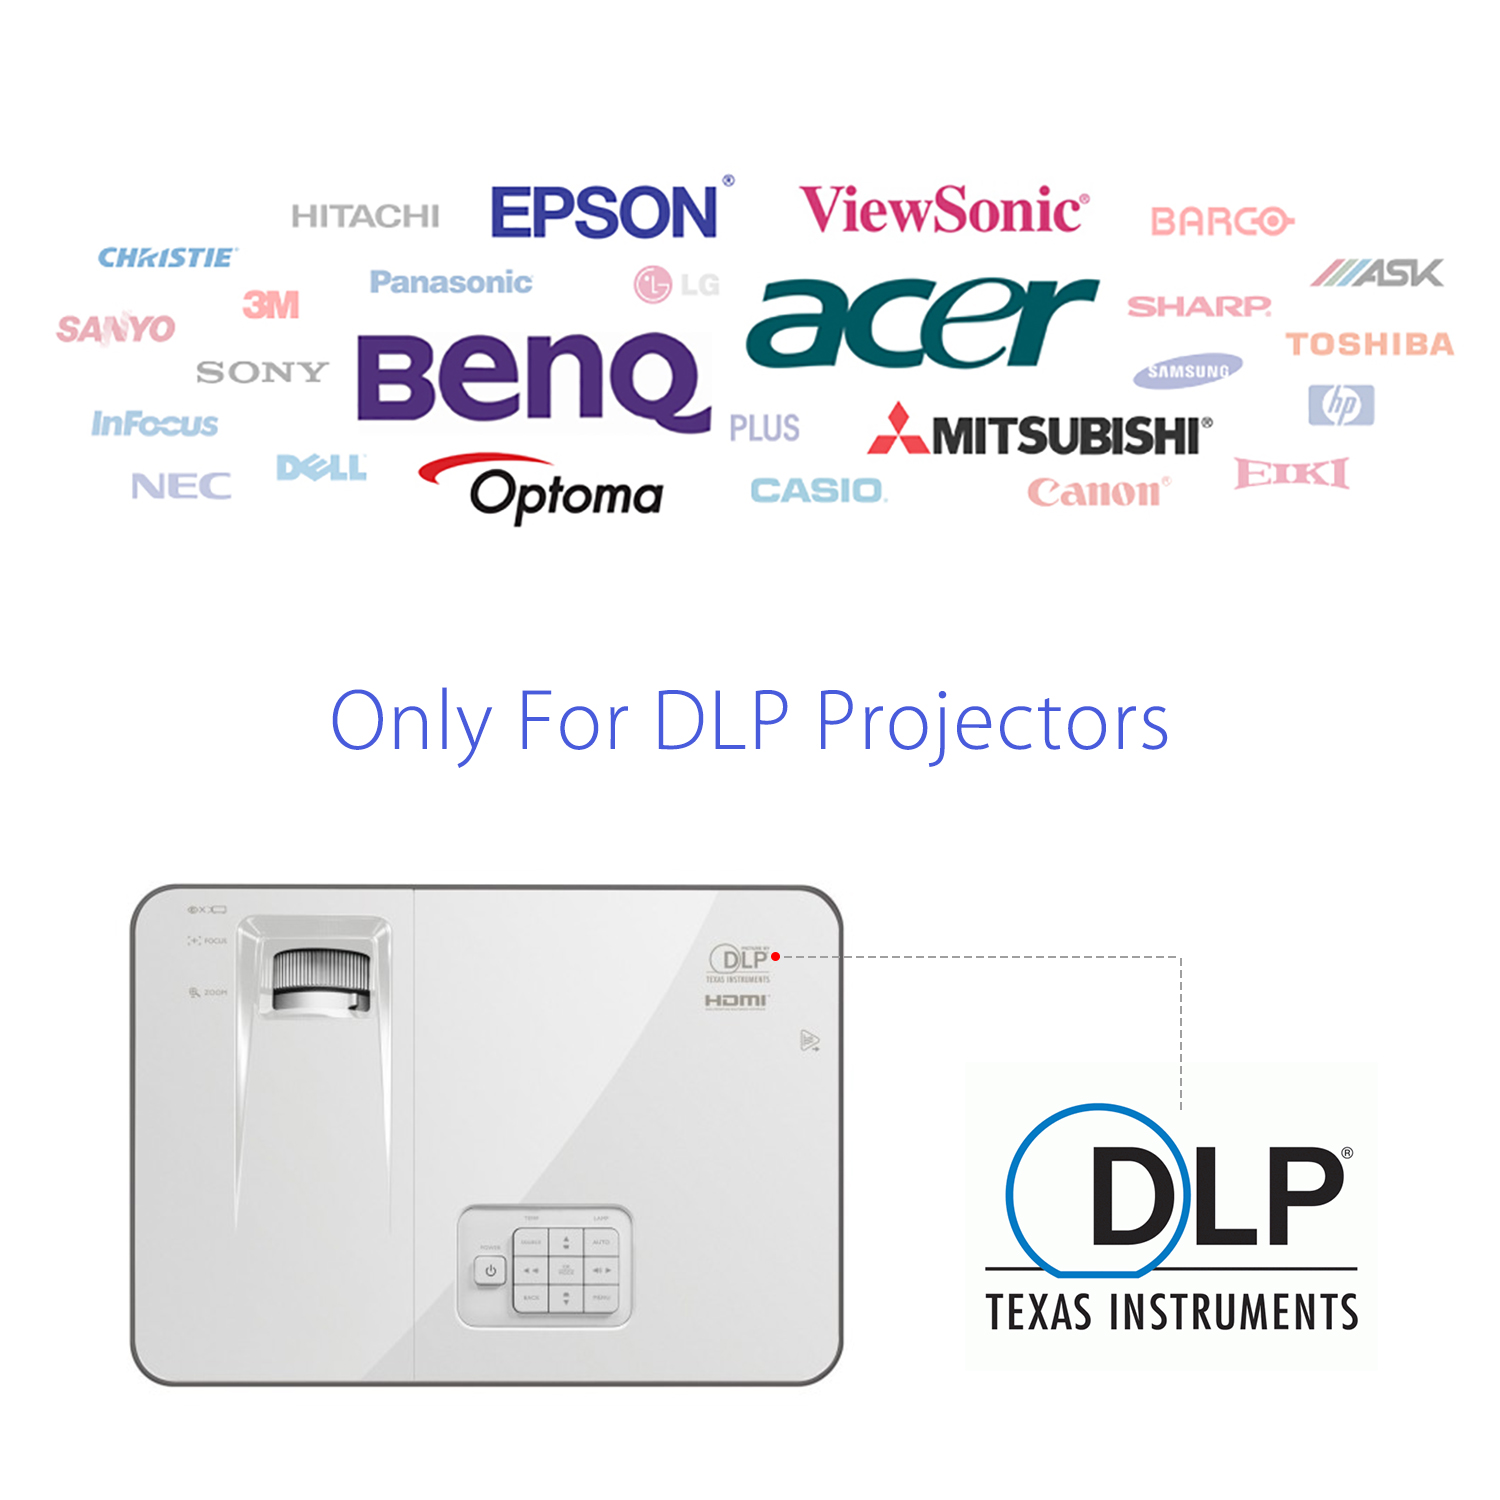 Mitsubishi Wd 73833: RX-30S DLP-Link Projector HD LCD Active Shutter 3D Glasses